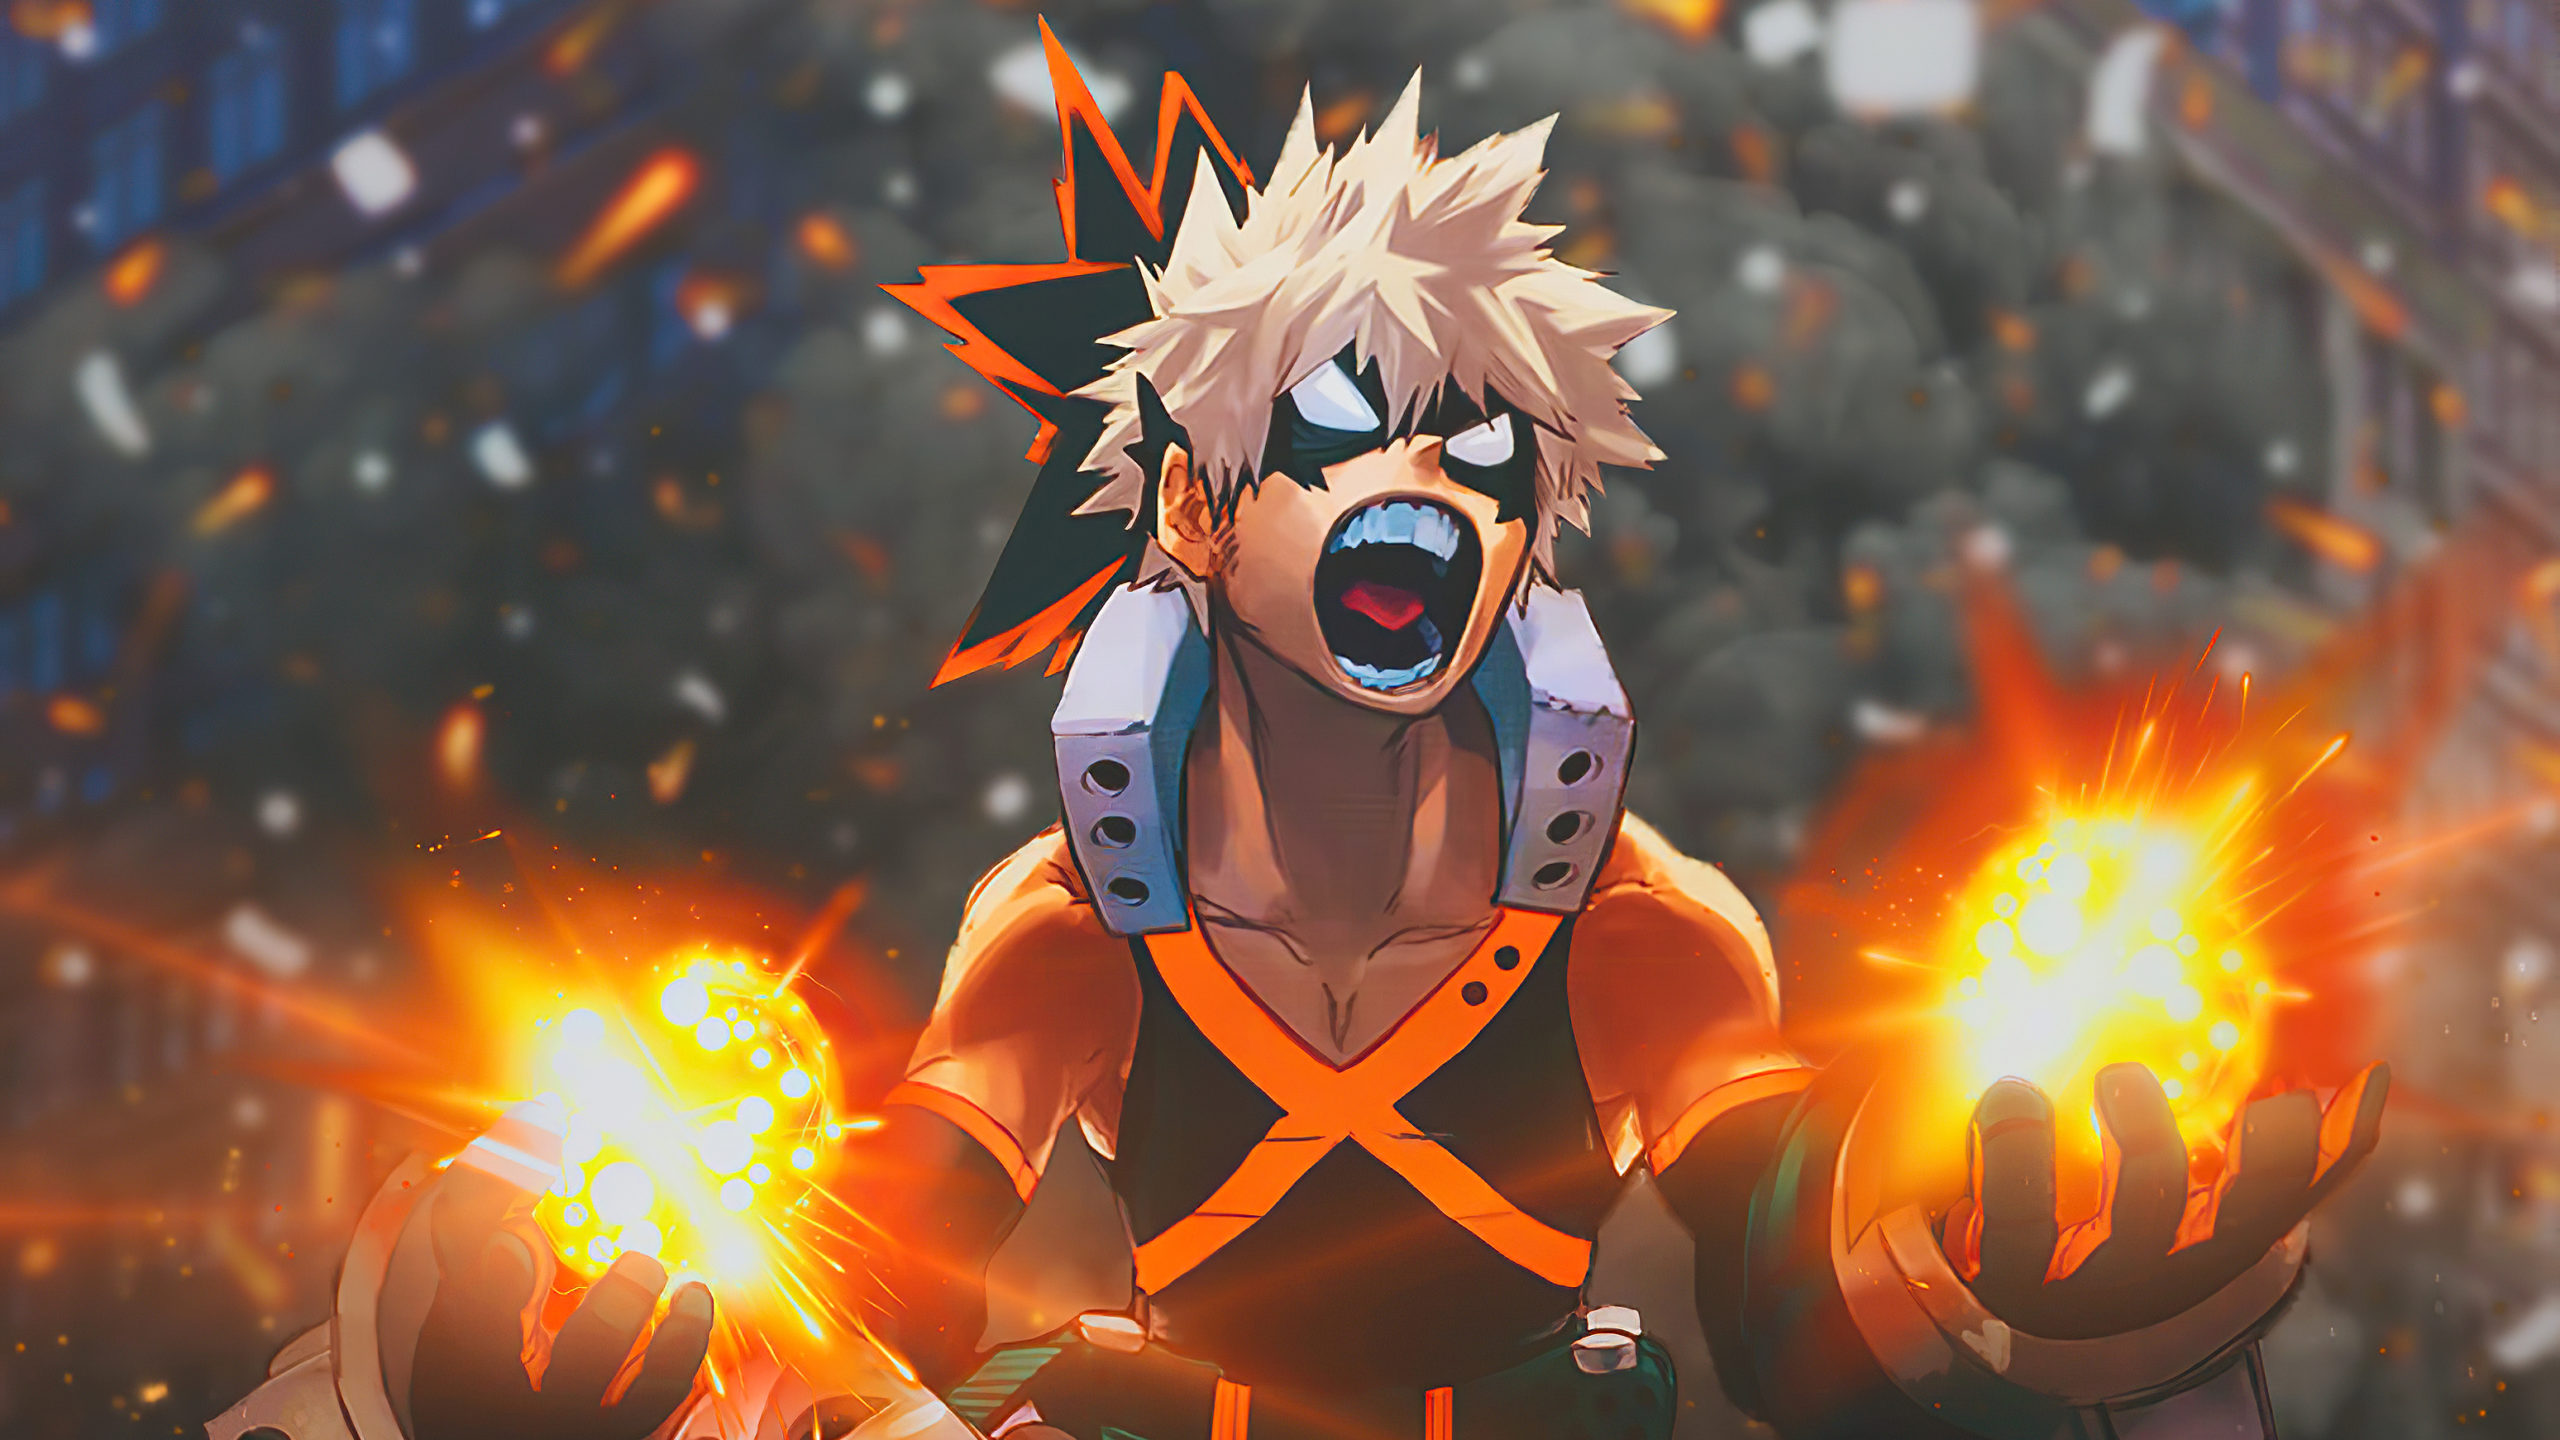 My Hero Academia Chapter 296 Read Online Summary Spoilers Raws Scans And Future Preview Blocktoro Contents 1 my hero academia chapter 293: my hero academia chapter 296 read